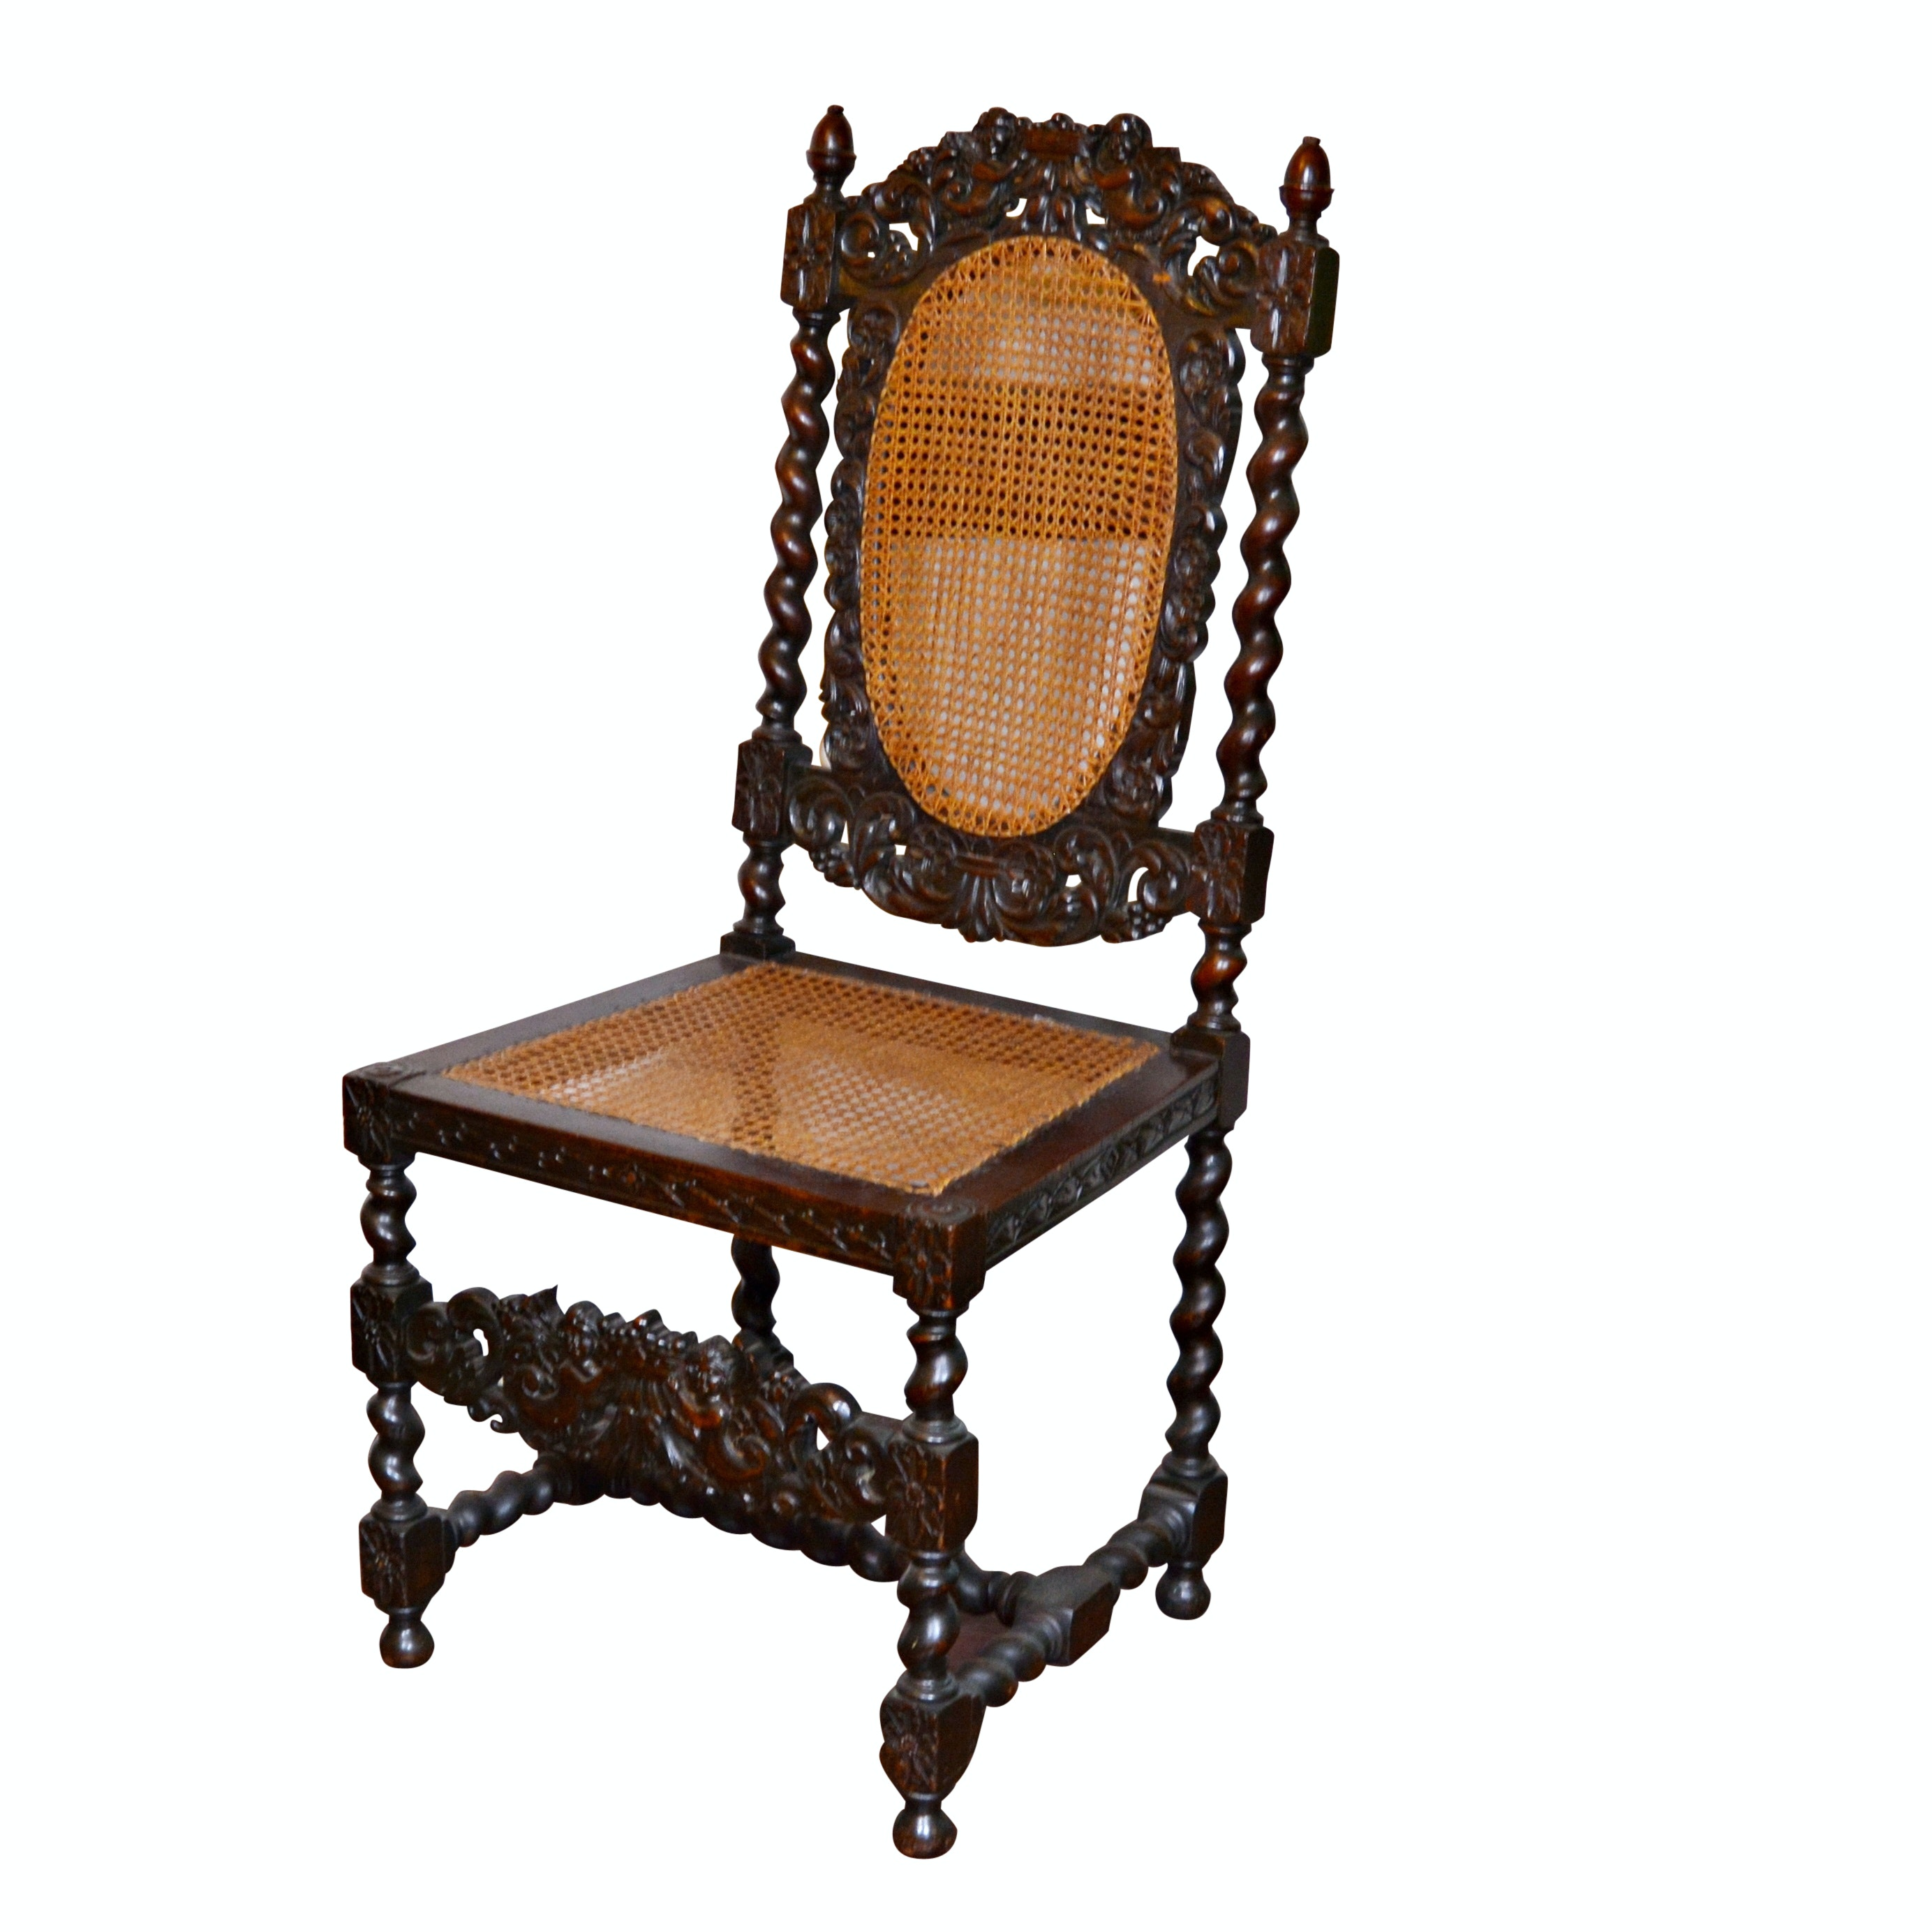 Jacobean Revival Walnut and Caned Open Armchair, Late 19th/Early 20th Century